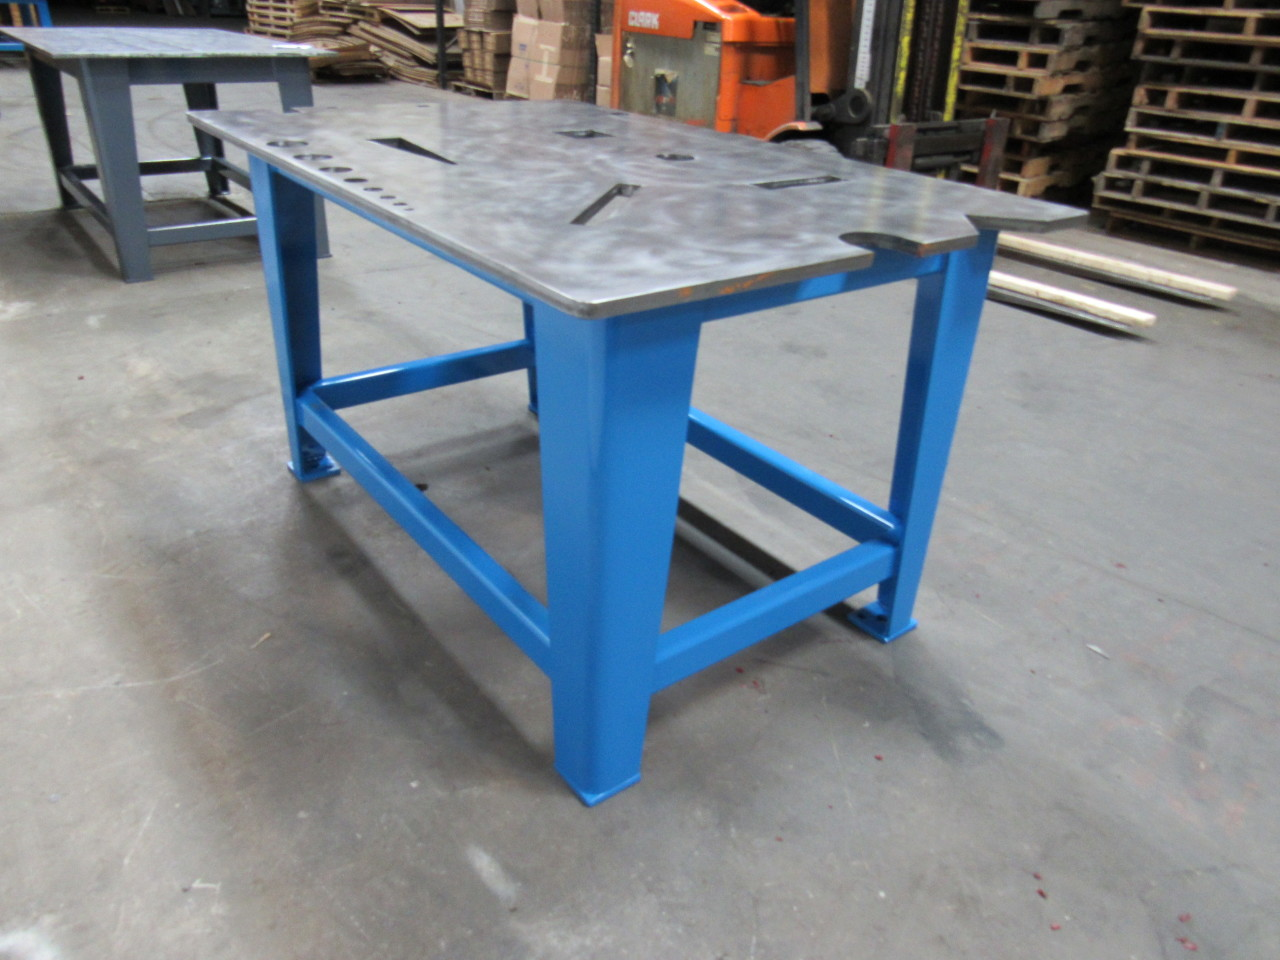 Steel Welding Work Bench Assembly Layout Table 39x60x33 3 4 Thick Top 824 Lb Ebay